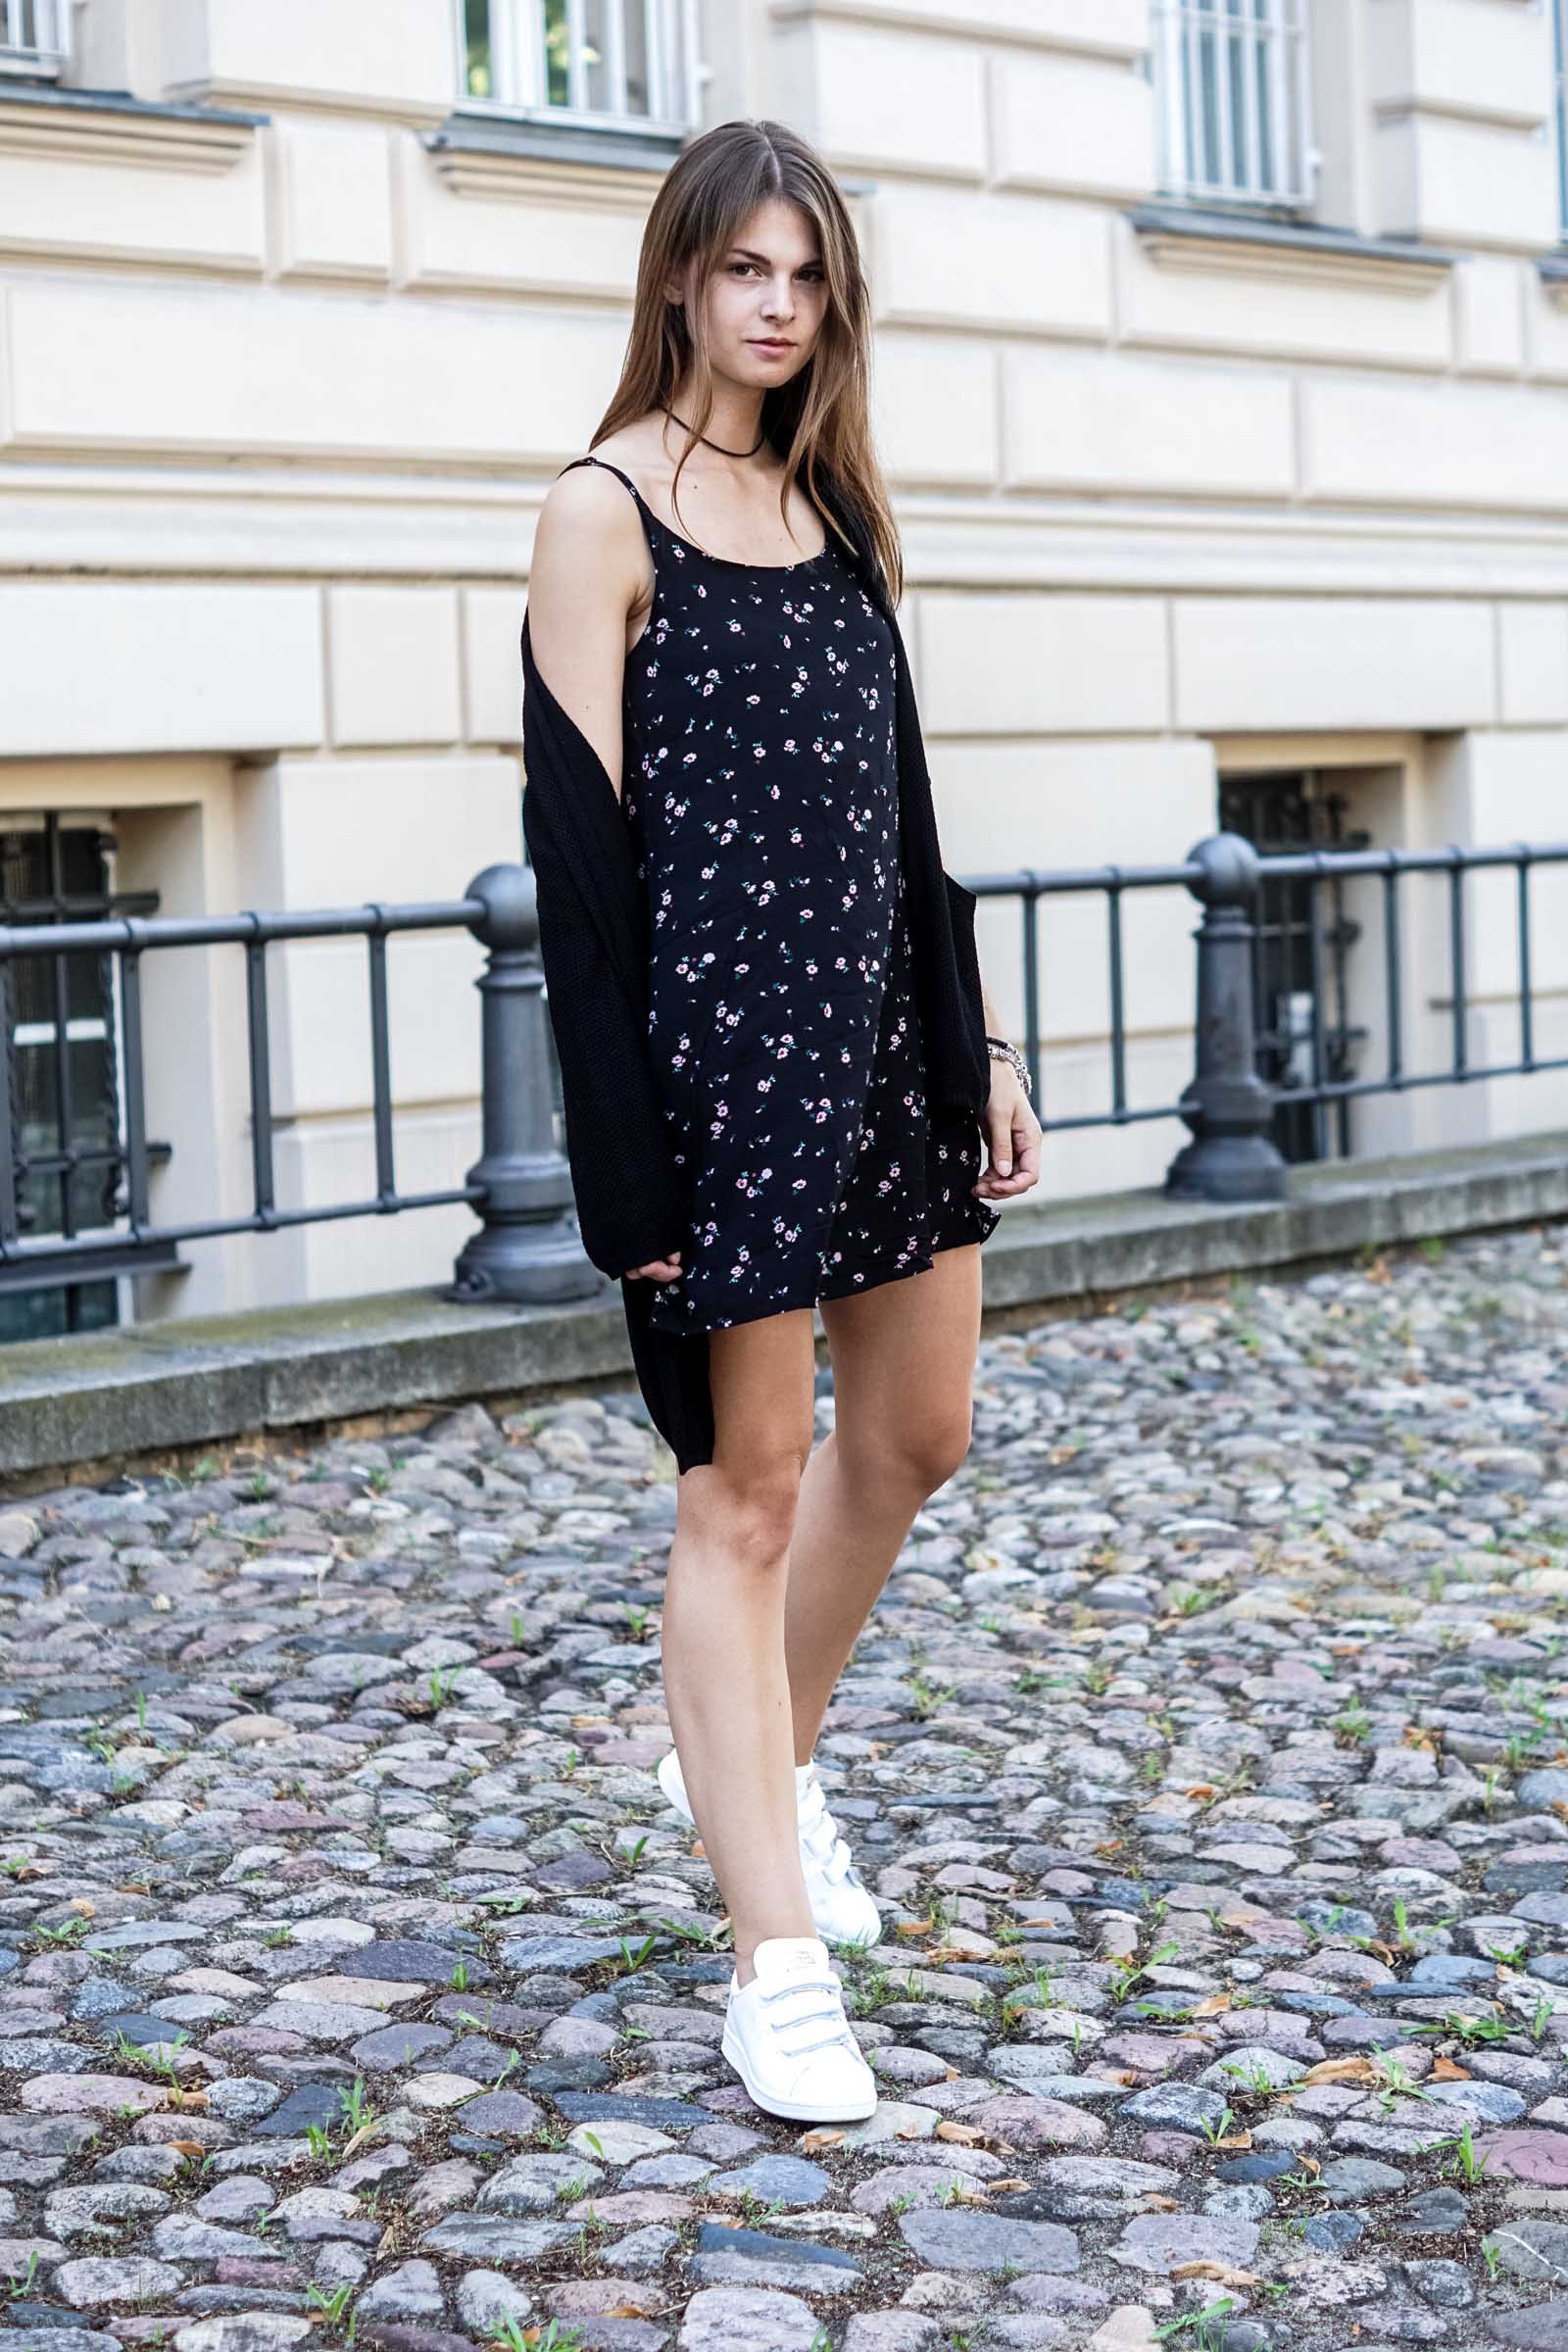 Velcro Stan Smith and Flower Dress